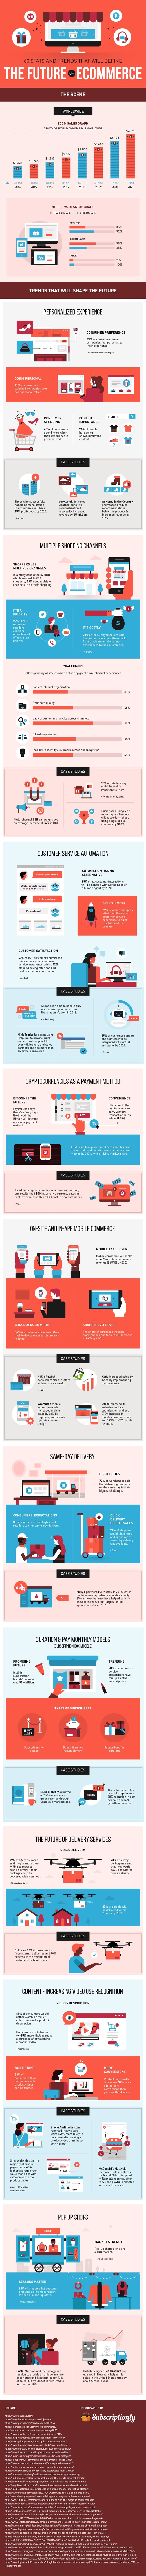 60 Stats & Trends That Will Define The Future of E-Commerce